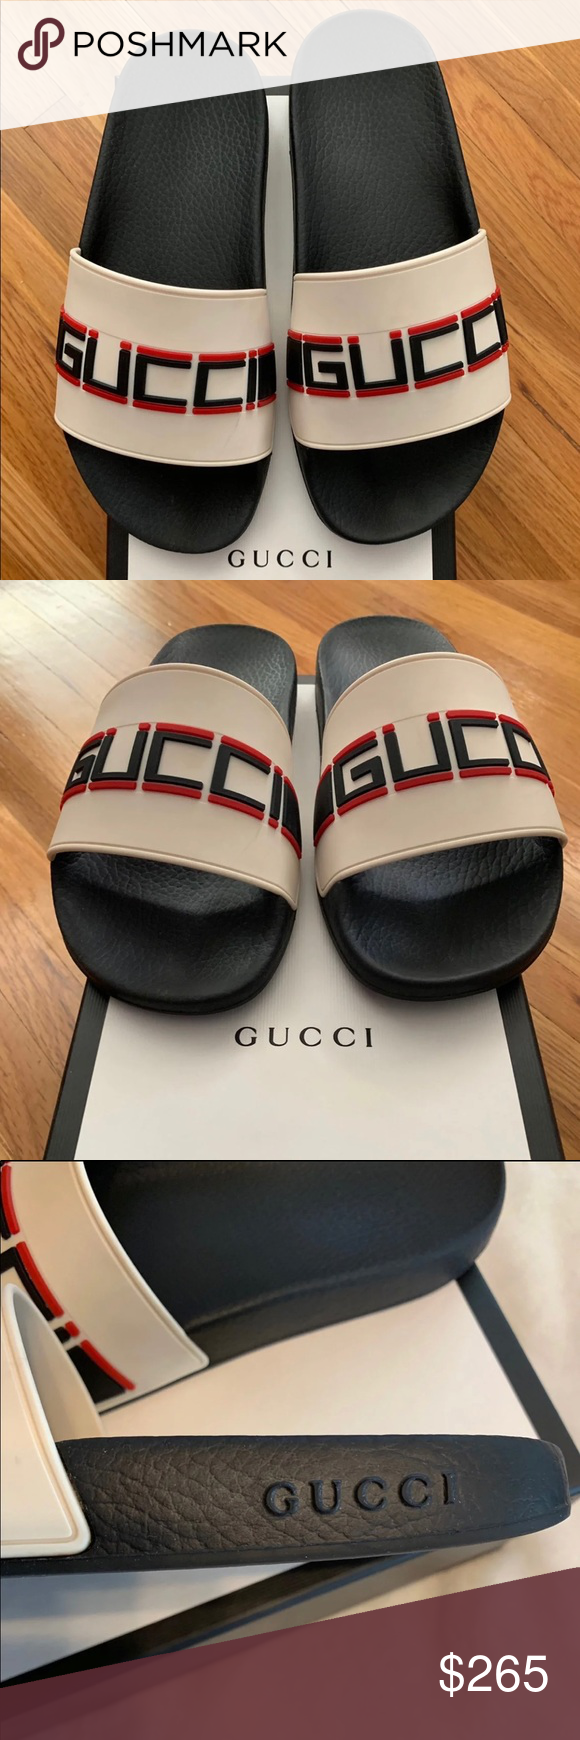 3b4d398692fadd NEW GUCCI BIEGE STRIPE SLIDES SZ 10 NEW GUCCI FLIP FLOPS   SANDALS ITEM  DESCRIPTION